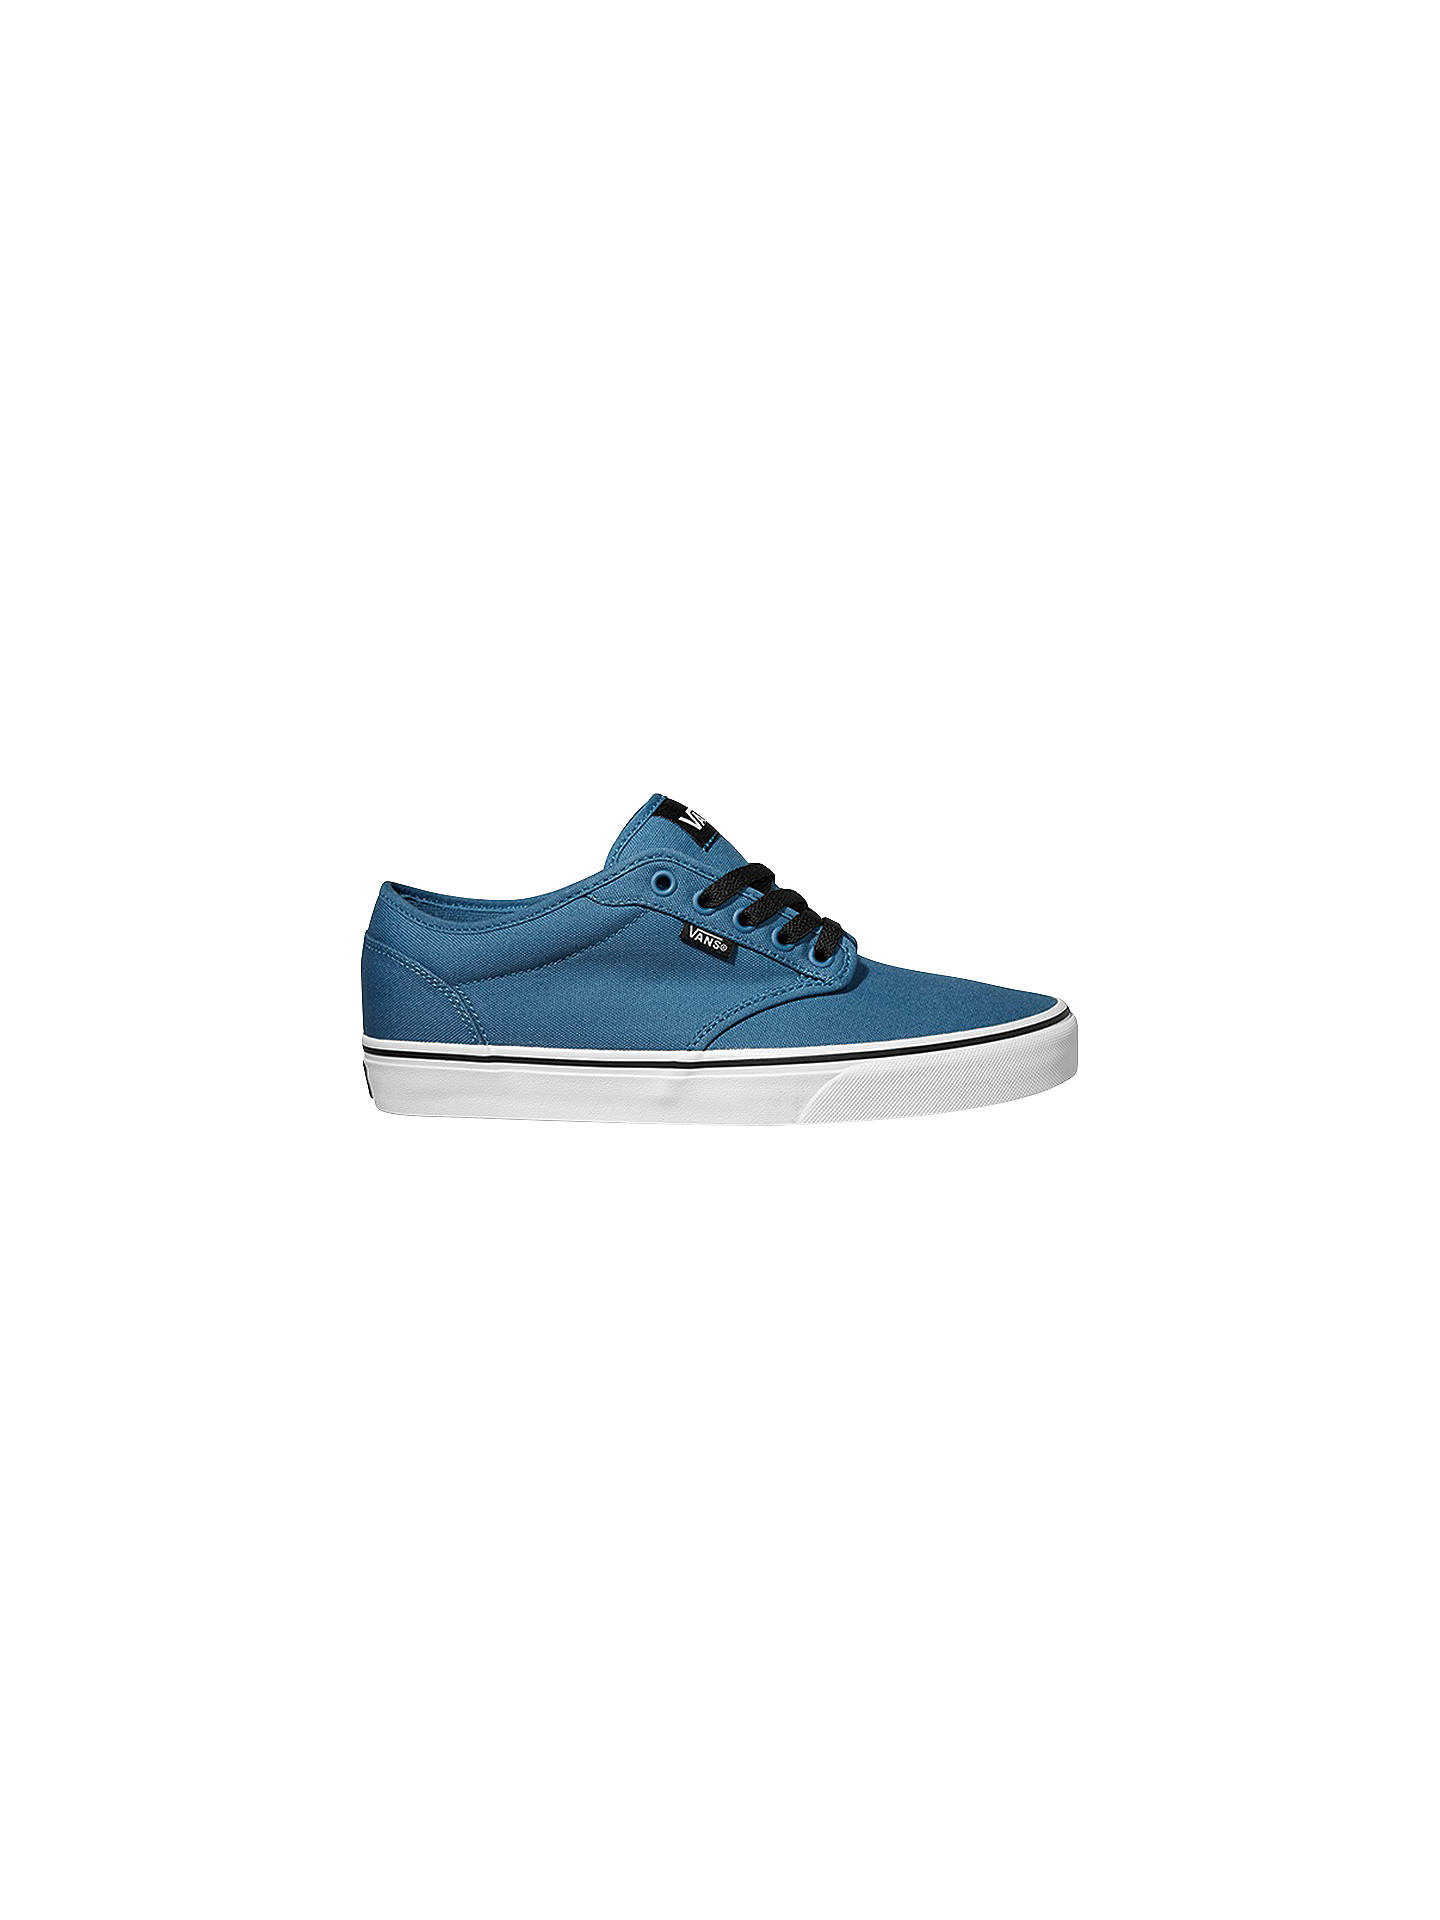 b39f1e1a2b Vans Atwood Canvas Trainers at John Lewis   Partners